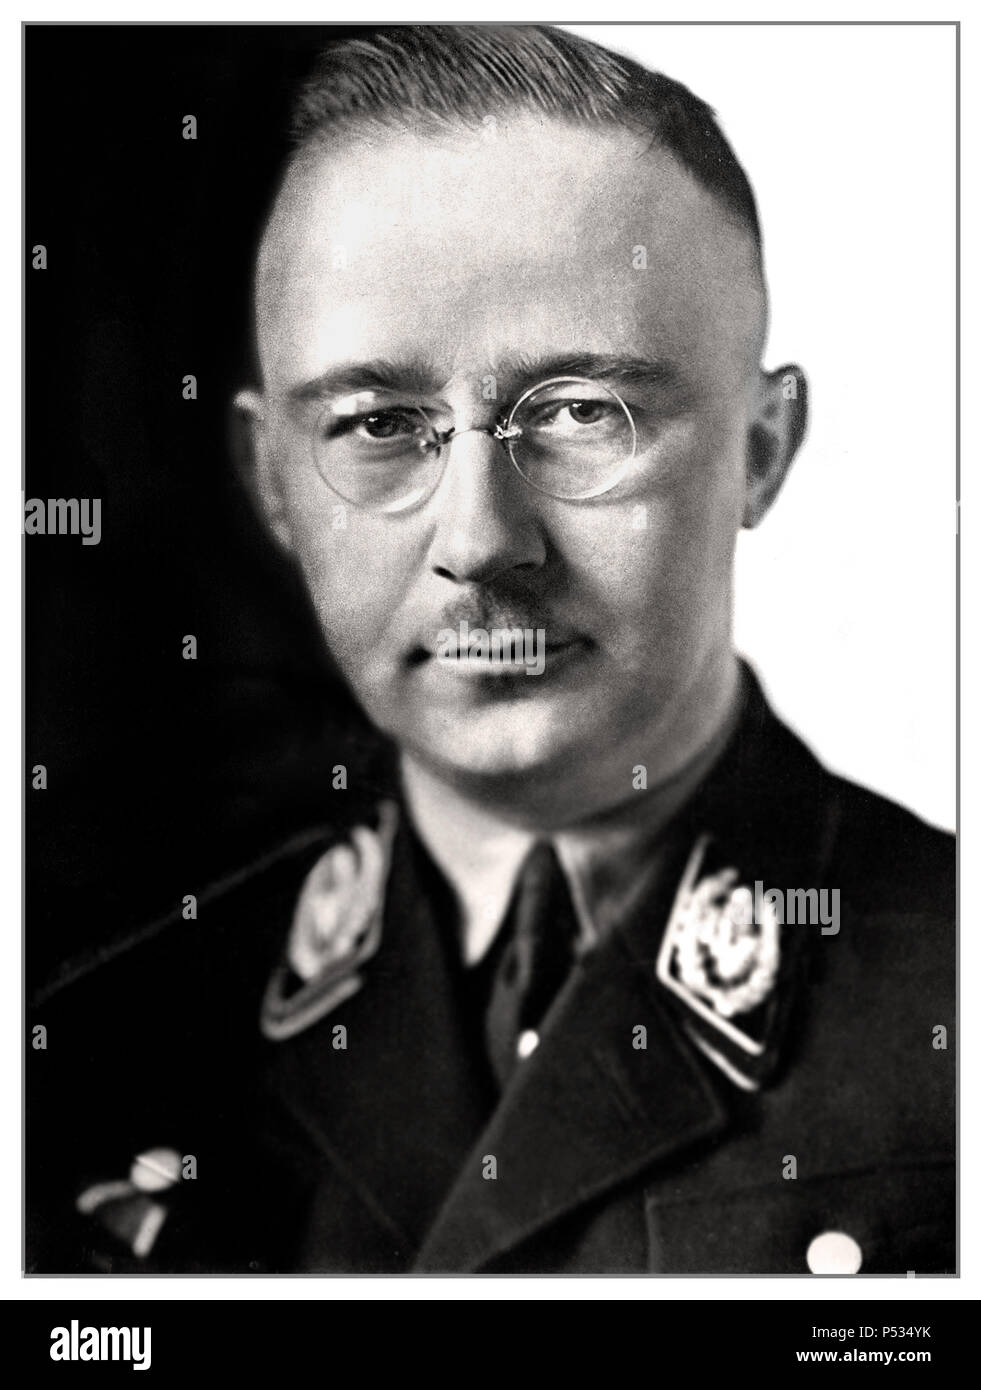 1940's WW2 Heinrich Himmler formal portrait in Waffen SS uniform German National Socialist Politician Nazi military commander secret police. Himmler was one of the most powerful men in Nazi Germany and one of the people most directly responsible for the Holocaust. Facilitated genocide across Europe and the east. Committed suicide in 1945 after being captured fleeing under another identity. - Stock Image